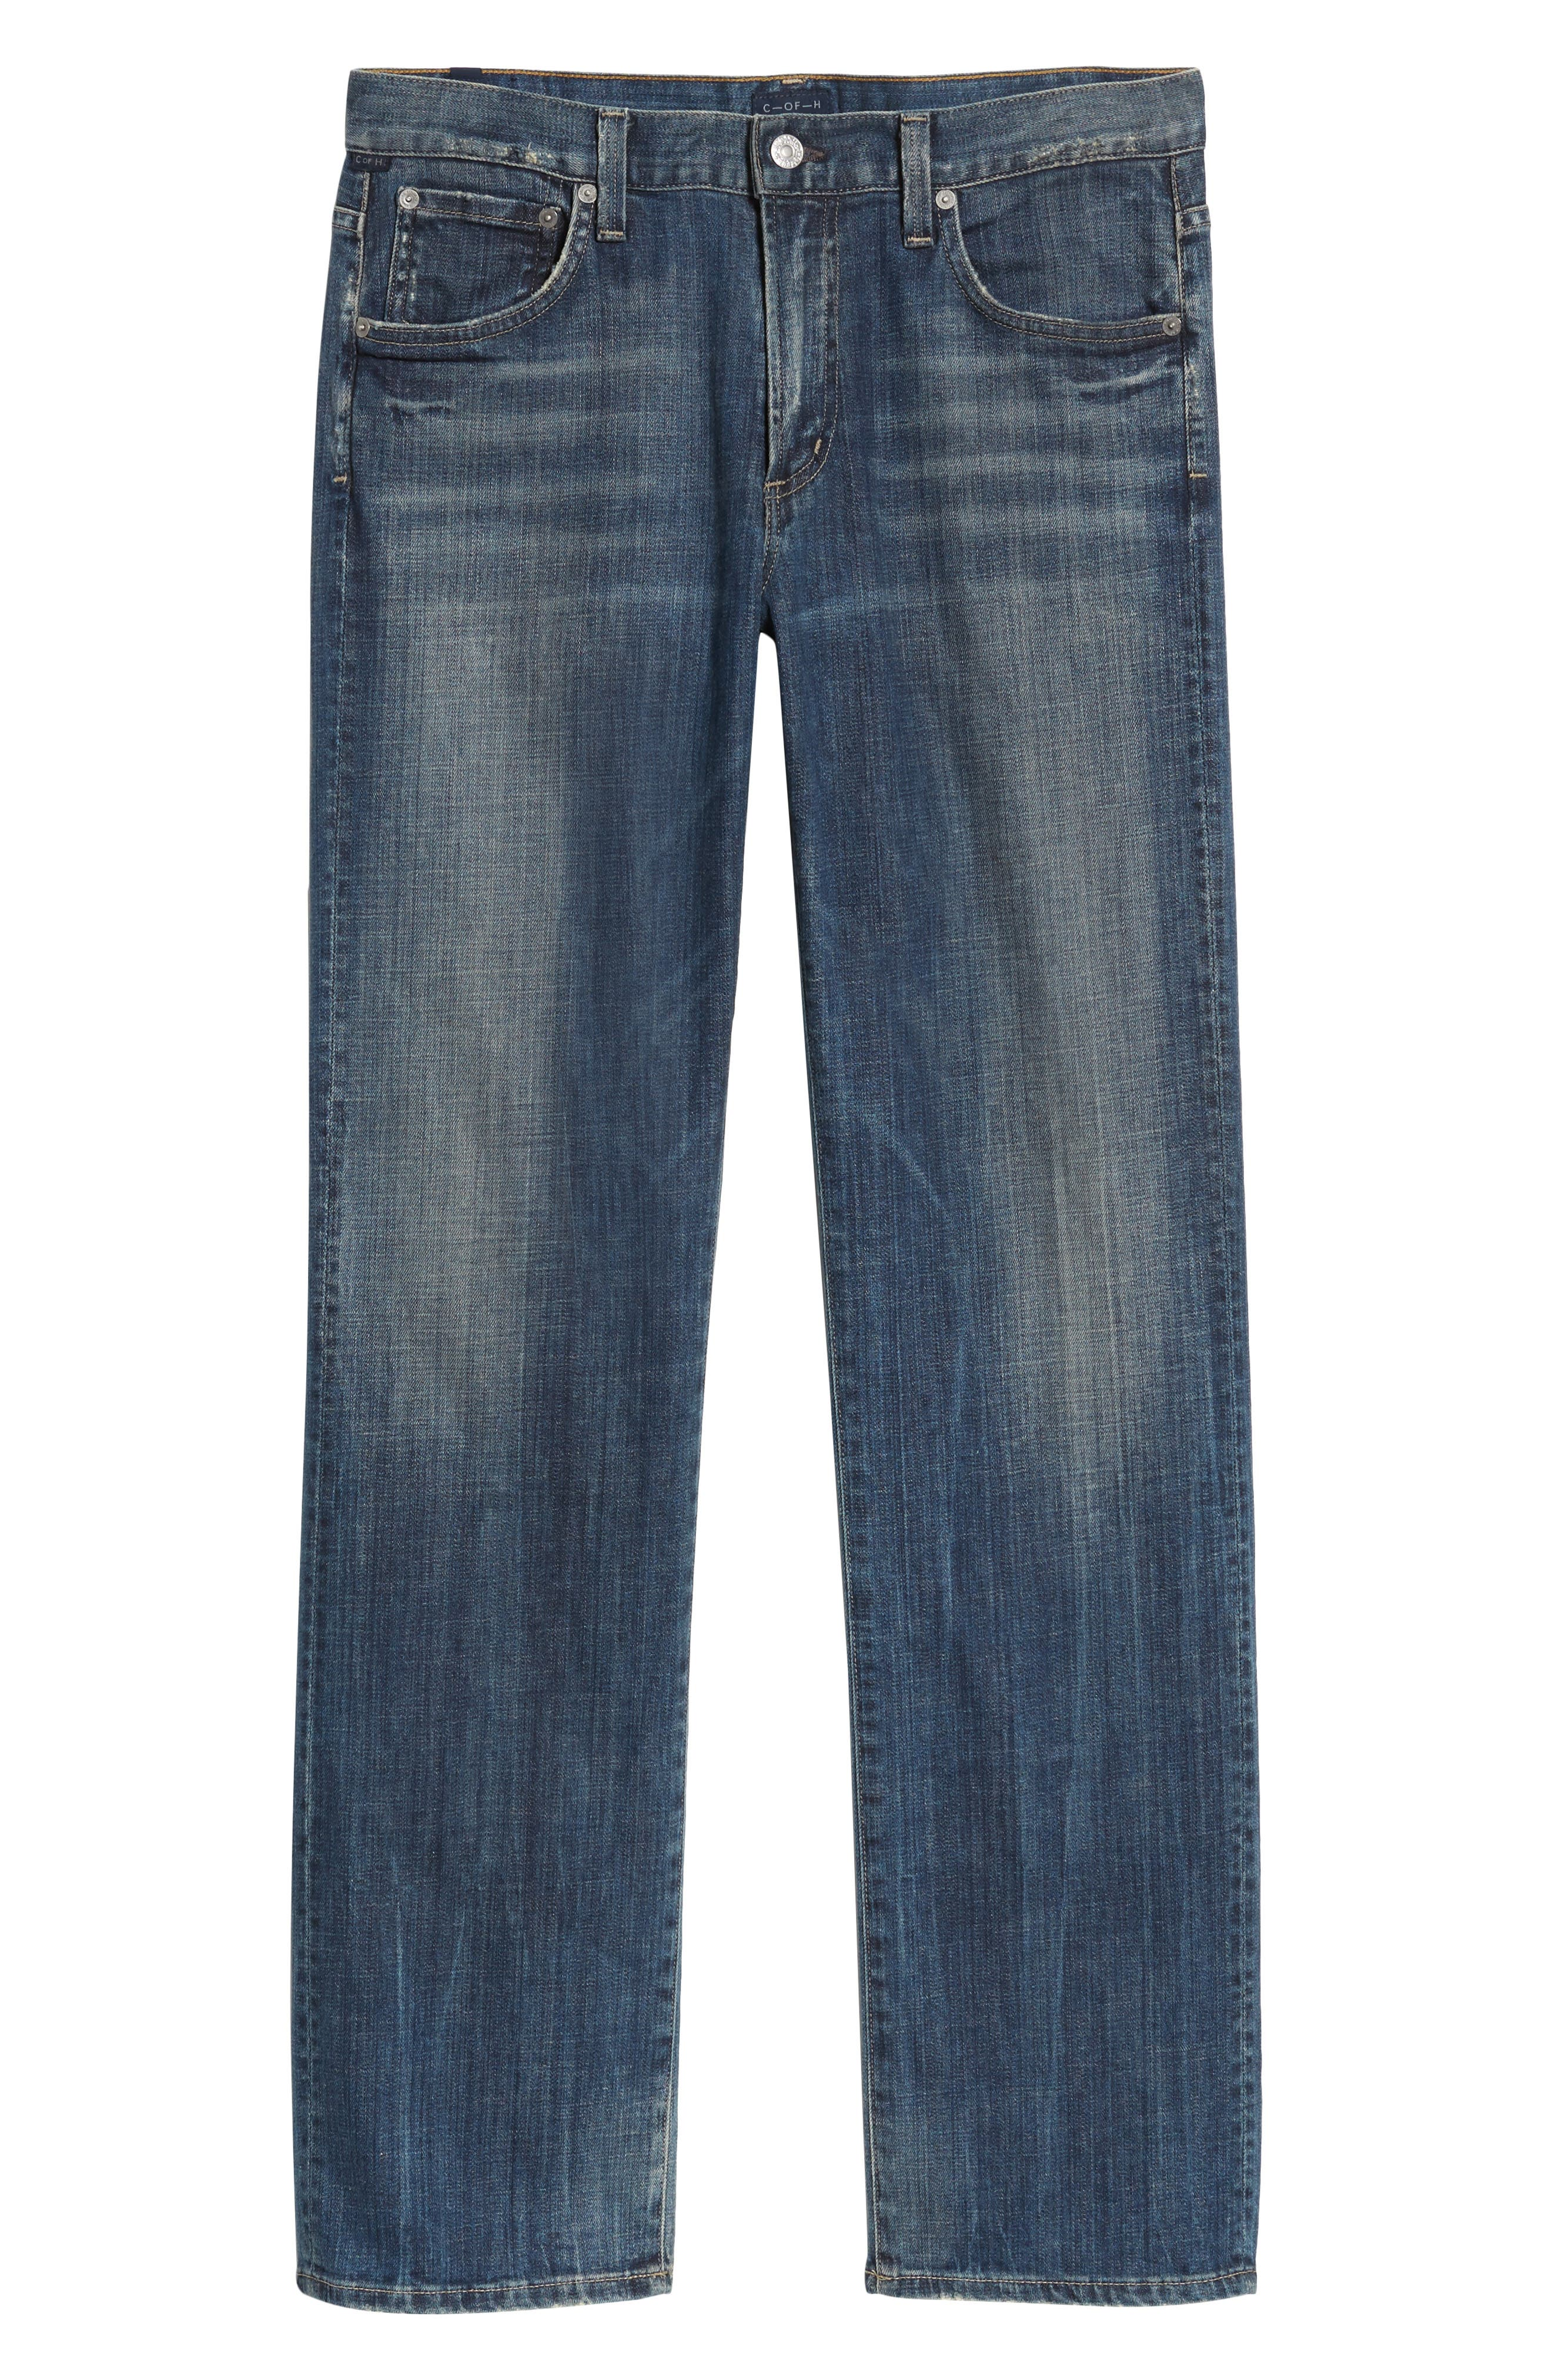 Sid Straight Leg Jeans,                             Alternate thumbnail 6, color,                             Reeves